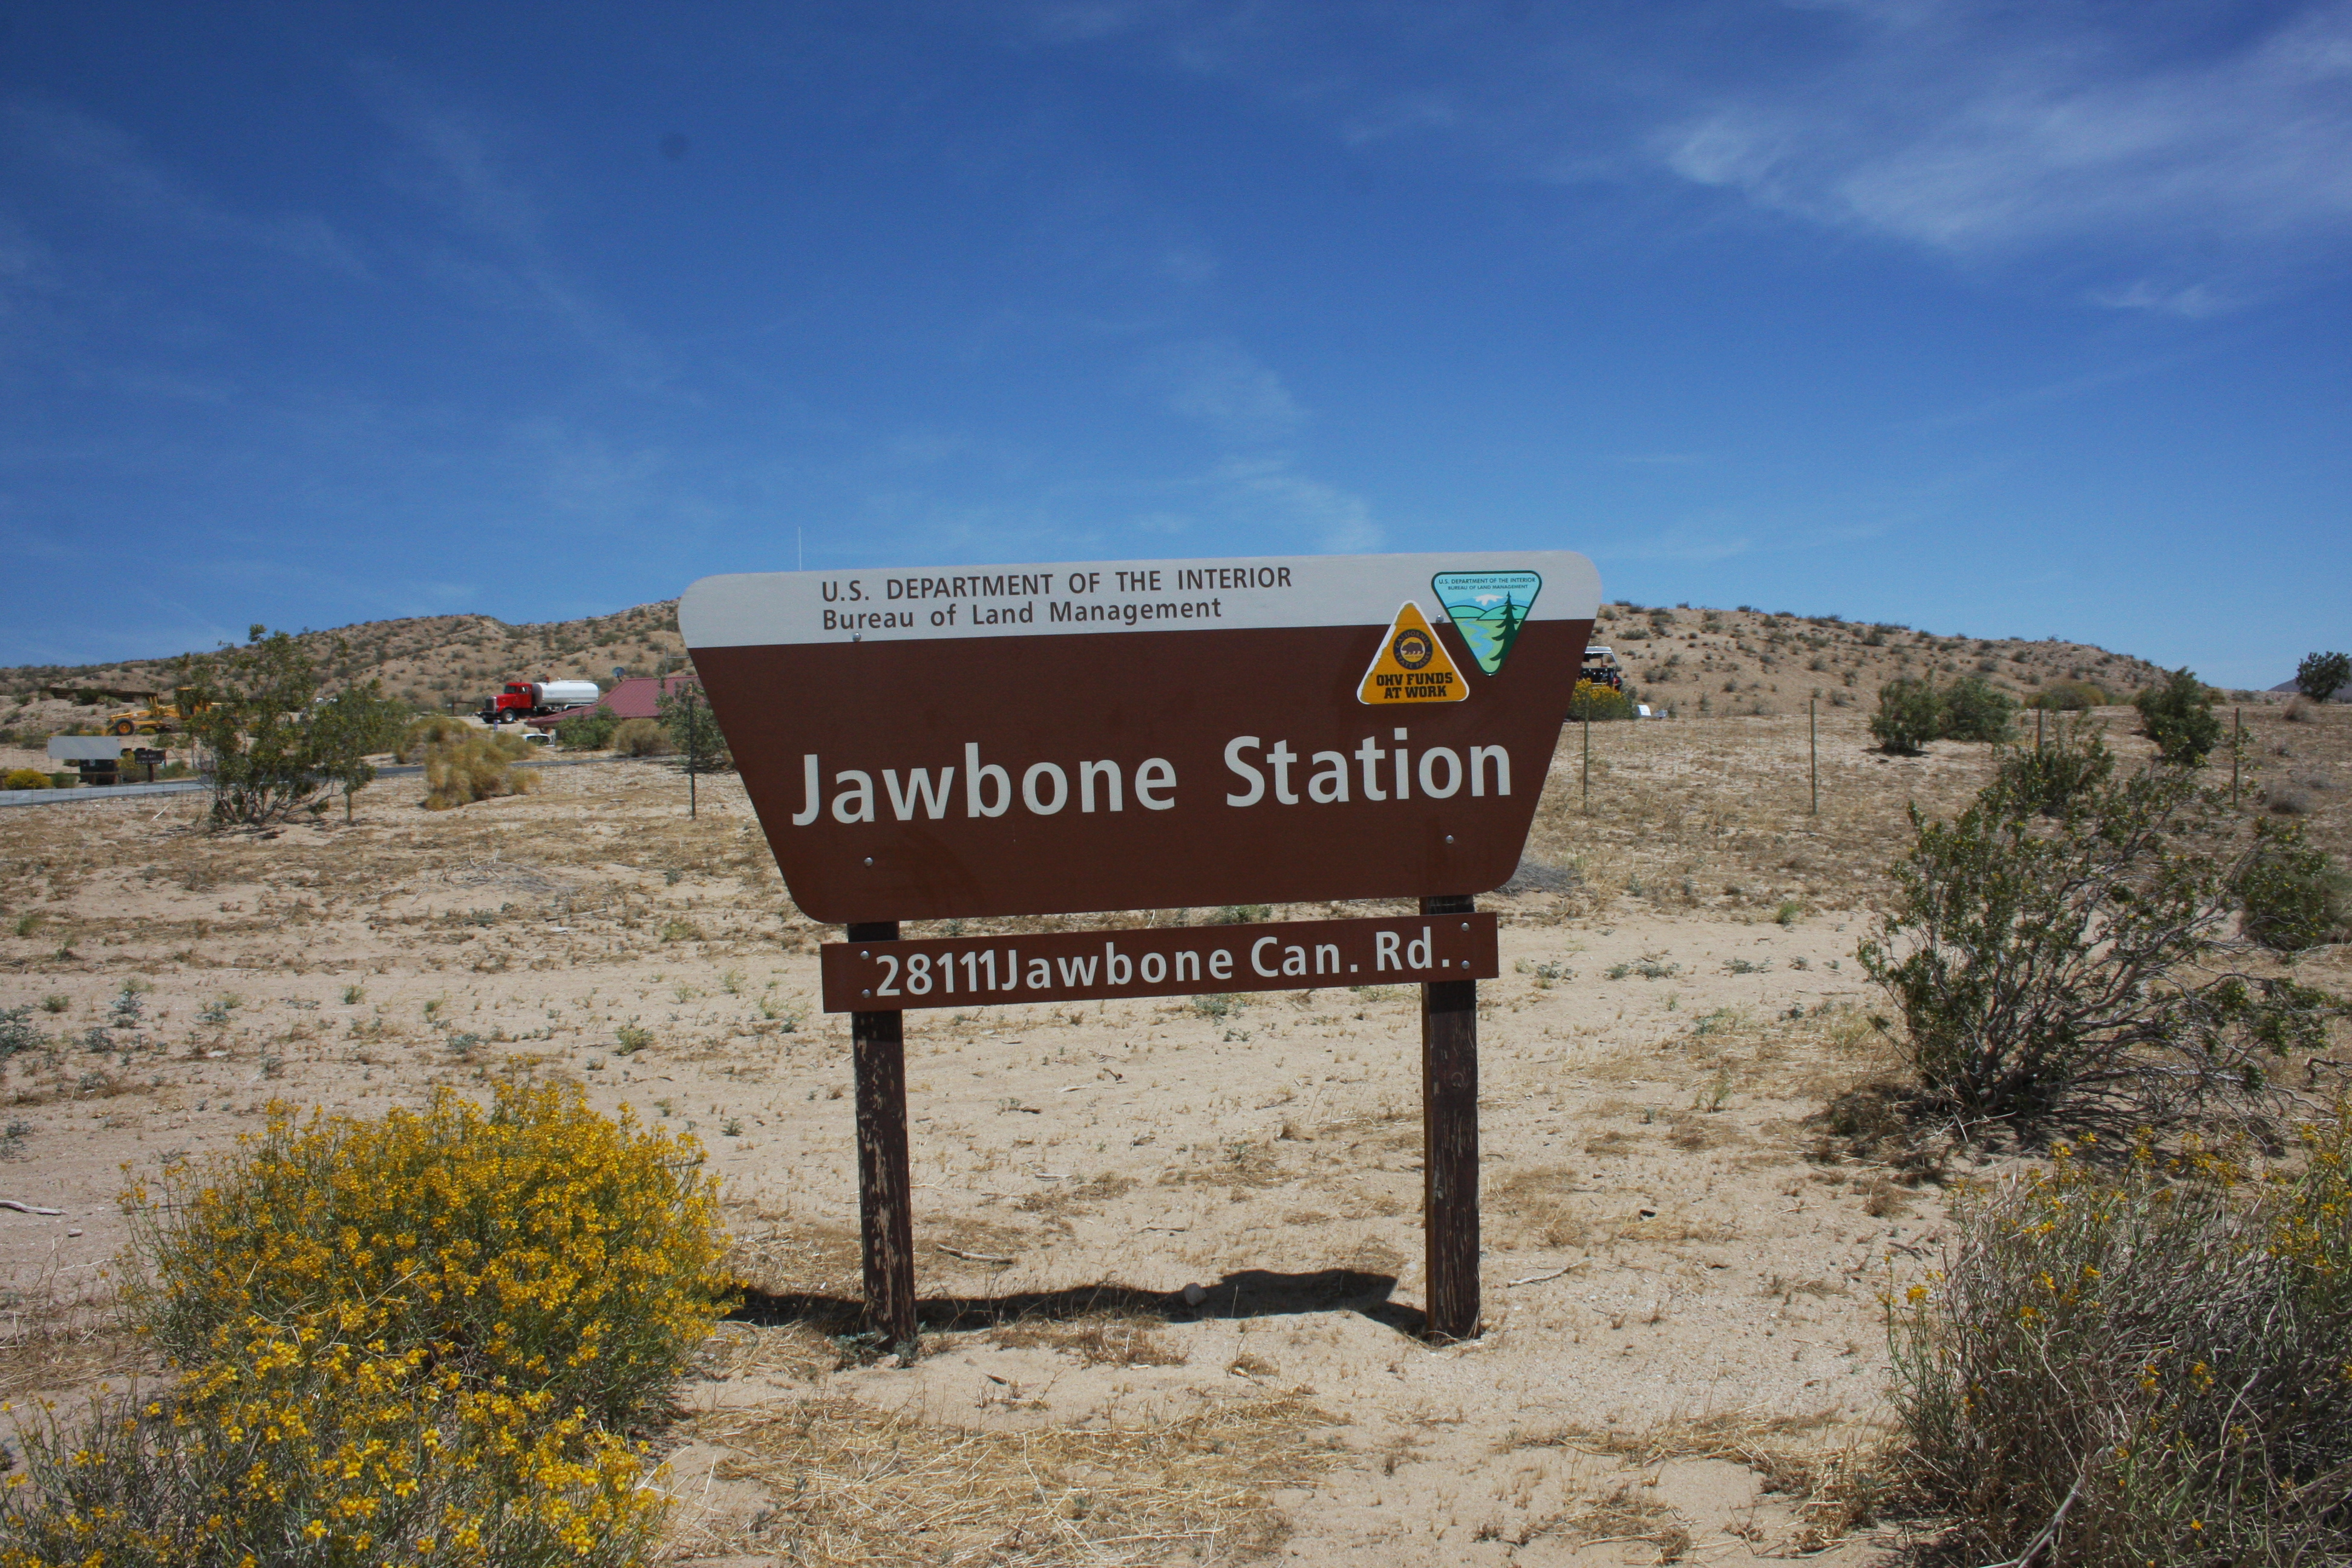 Ground Breaking Ceremony At Jawbone Station